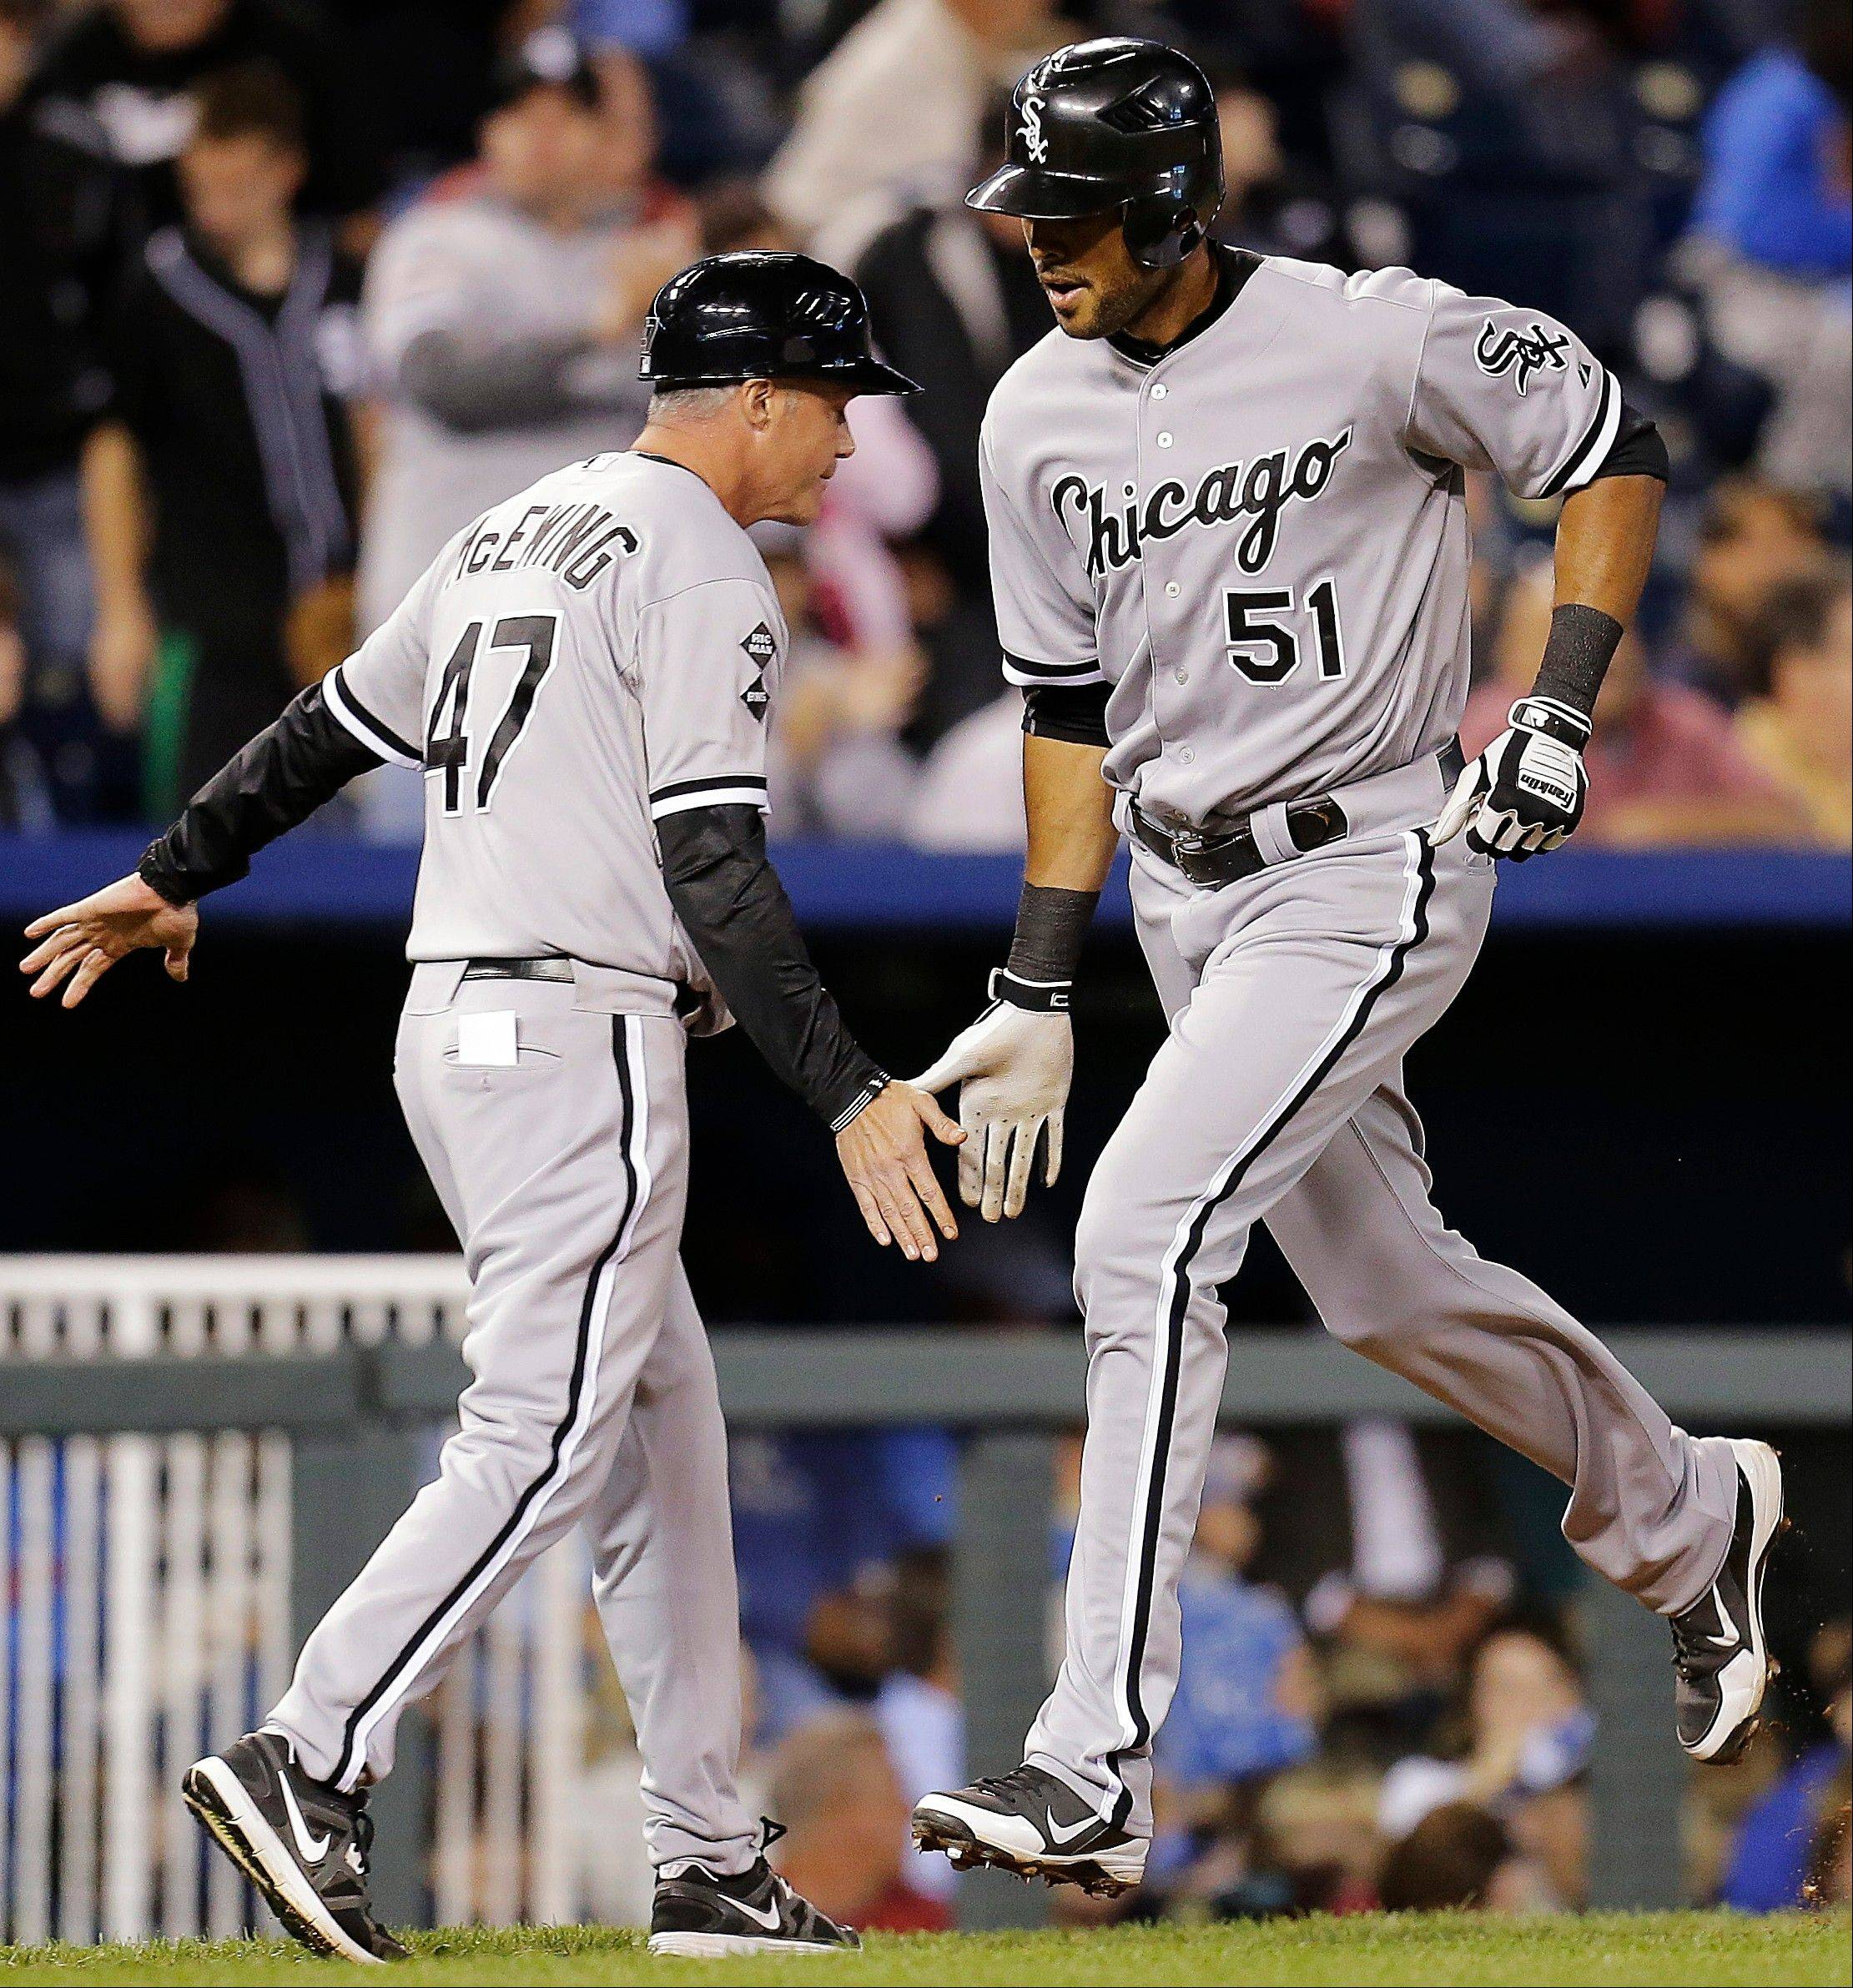 Ventura pushing right buttons for White Sox